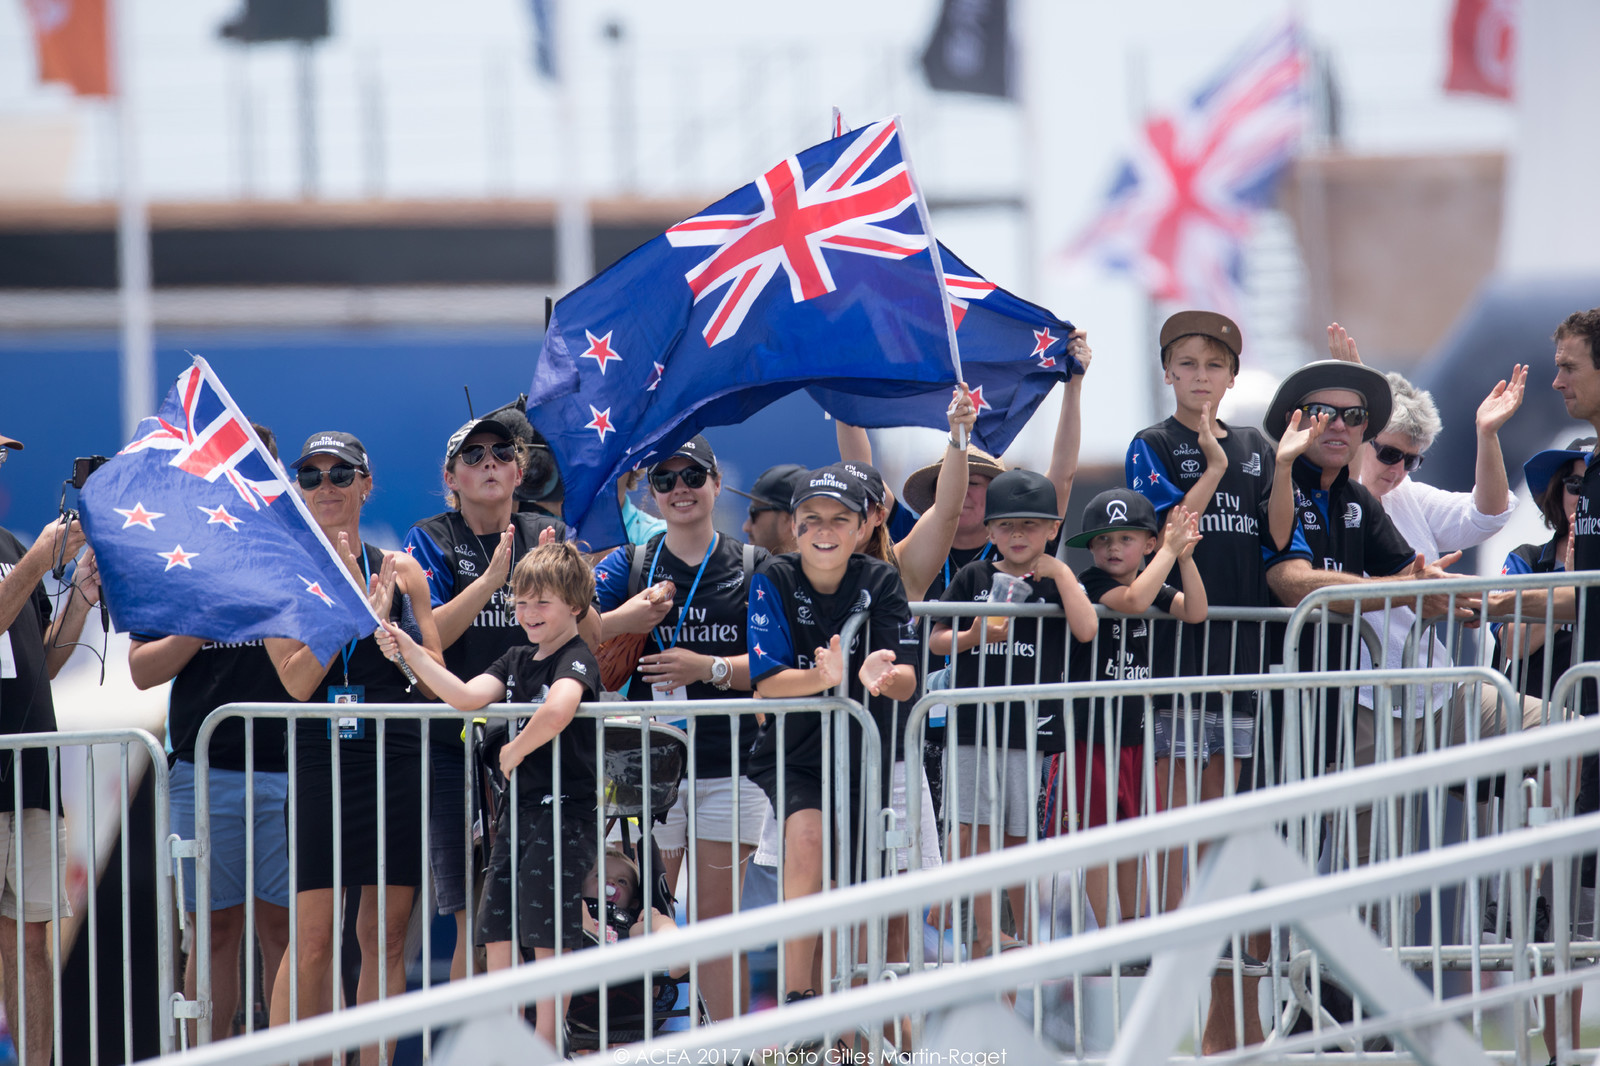 35th America's Cup Bermuda 2017 - Louis Vuitton America's Cup Qualifiers, Day 7 - Dock Out Emirates Team New Zealand